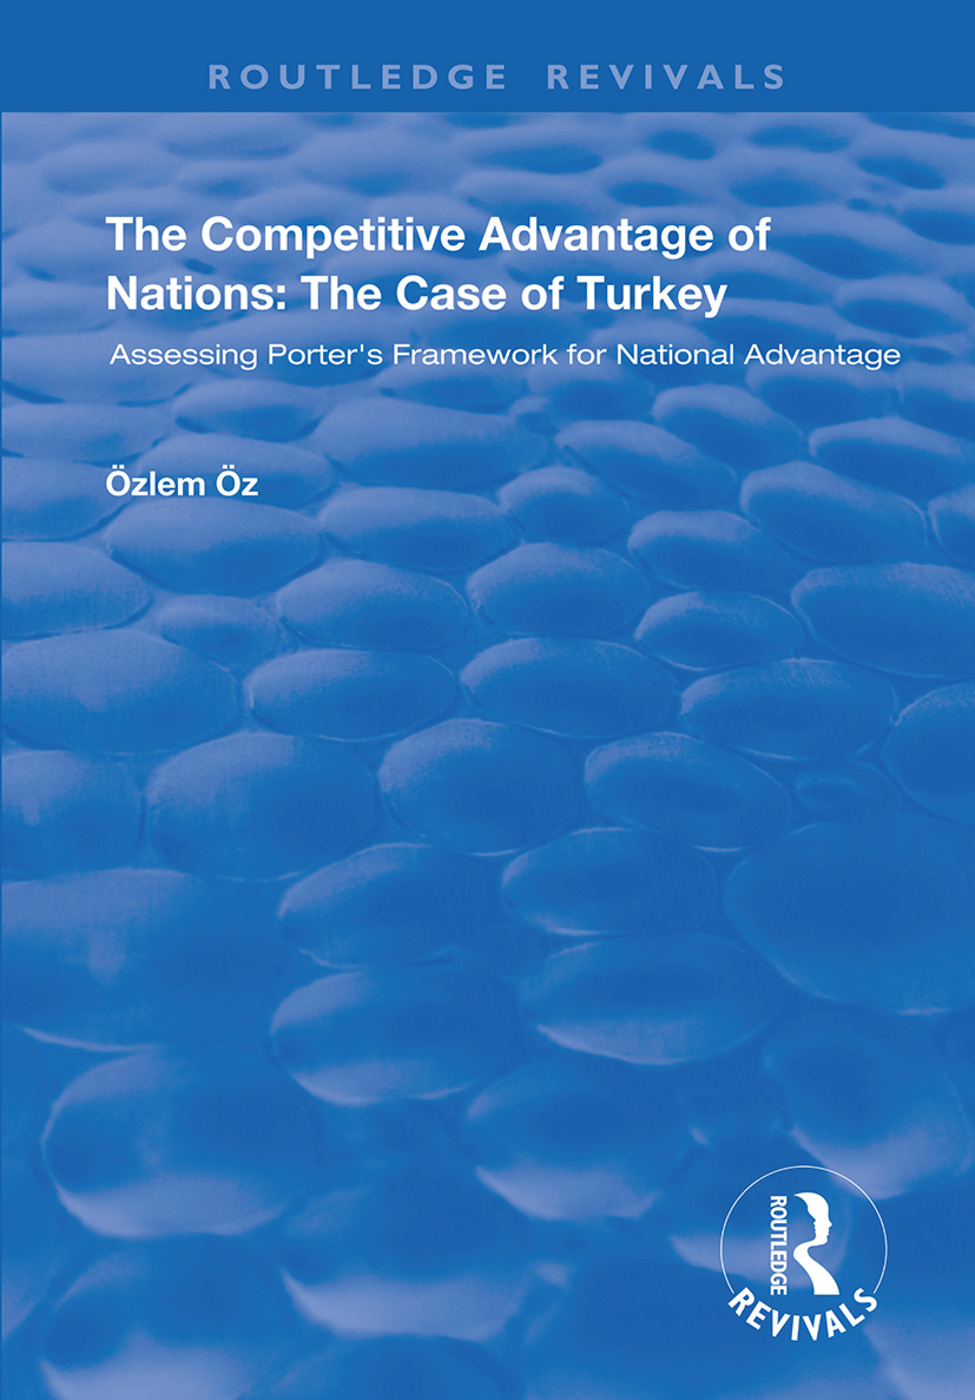 The Competitive Advantage of Nations: The Case of Turkey: Assessing Porter's Framework for National Advantage book cover